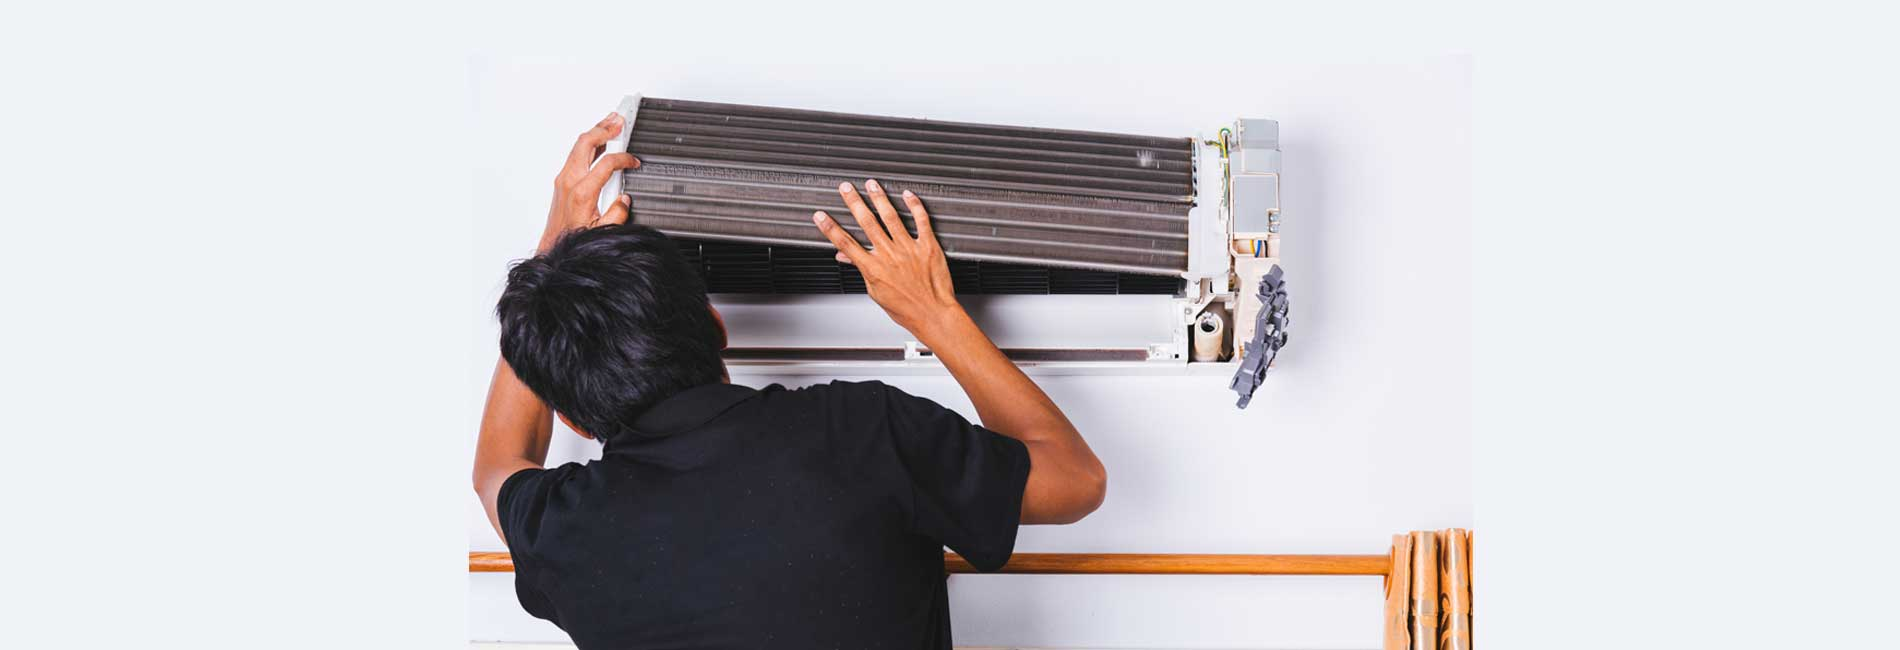 AC Uninstallation in Ramapuram